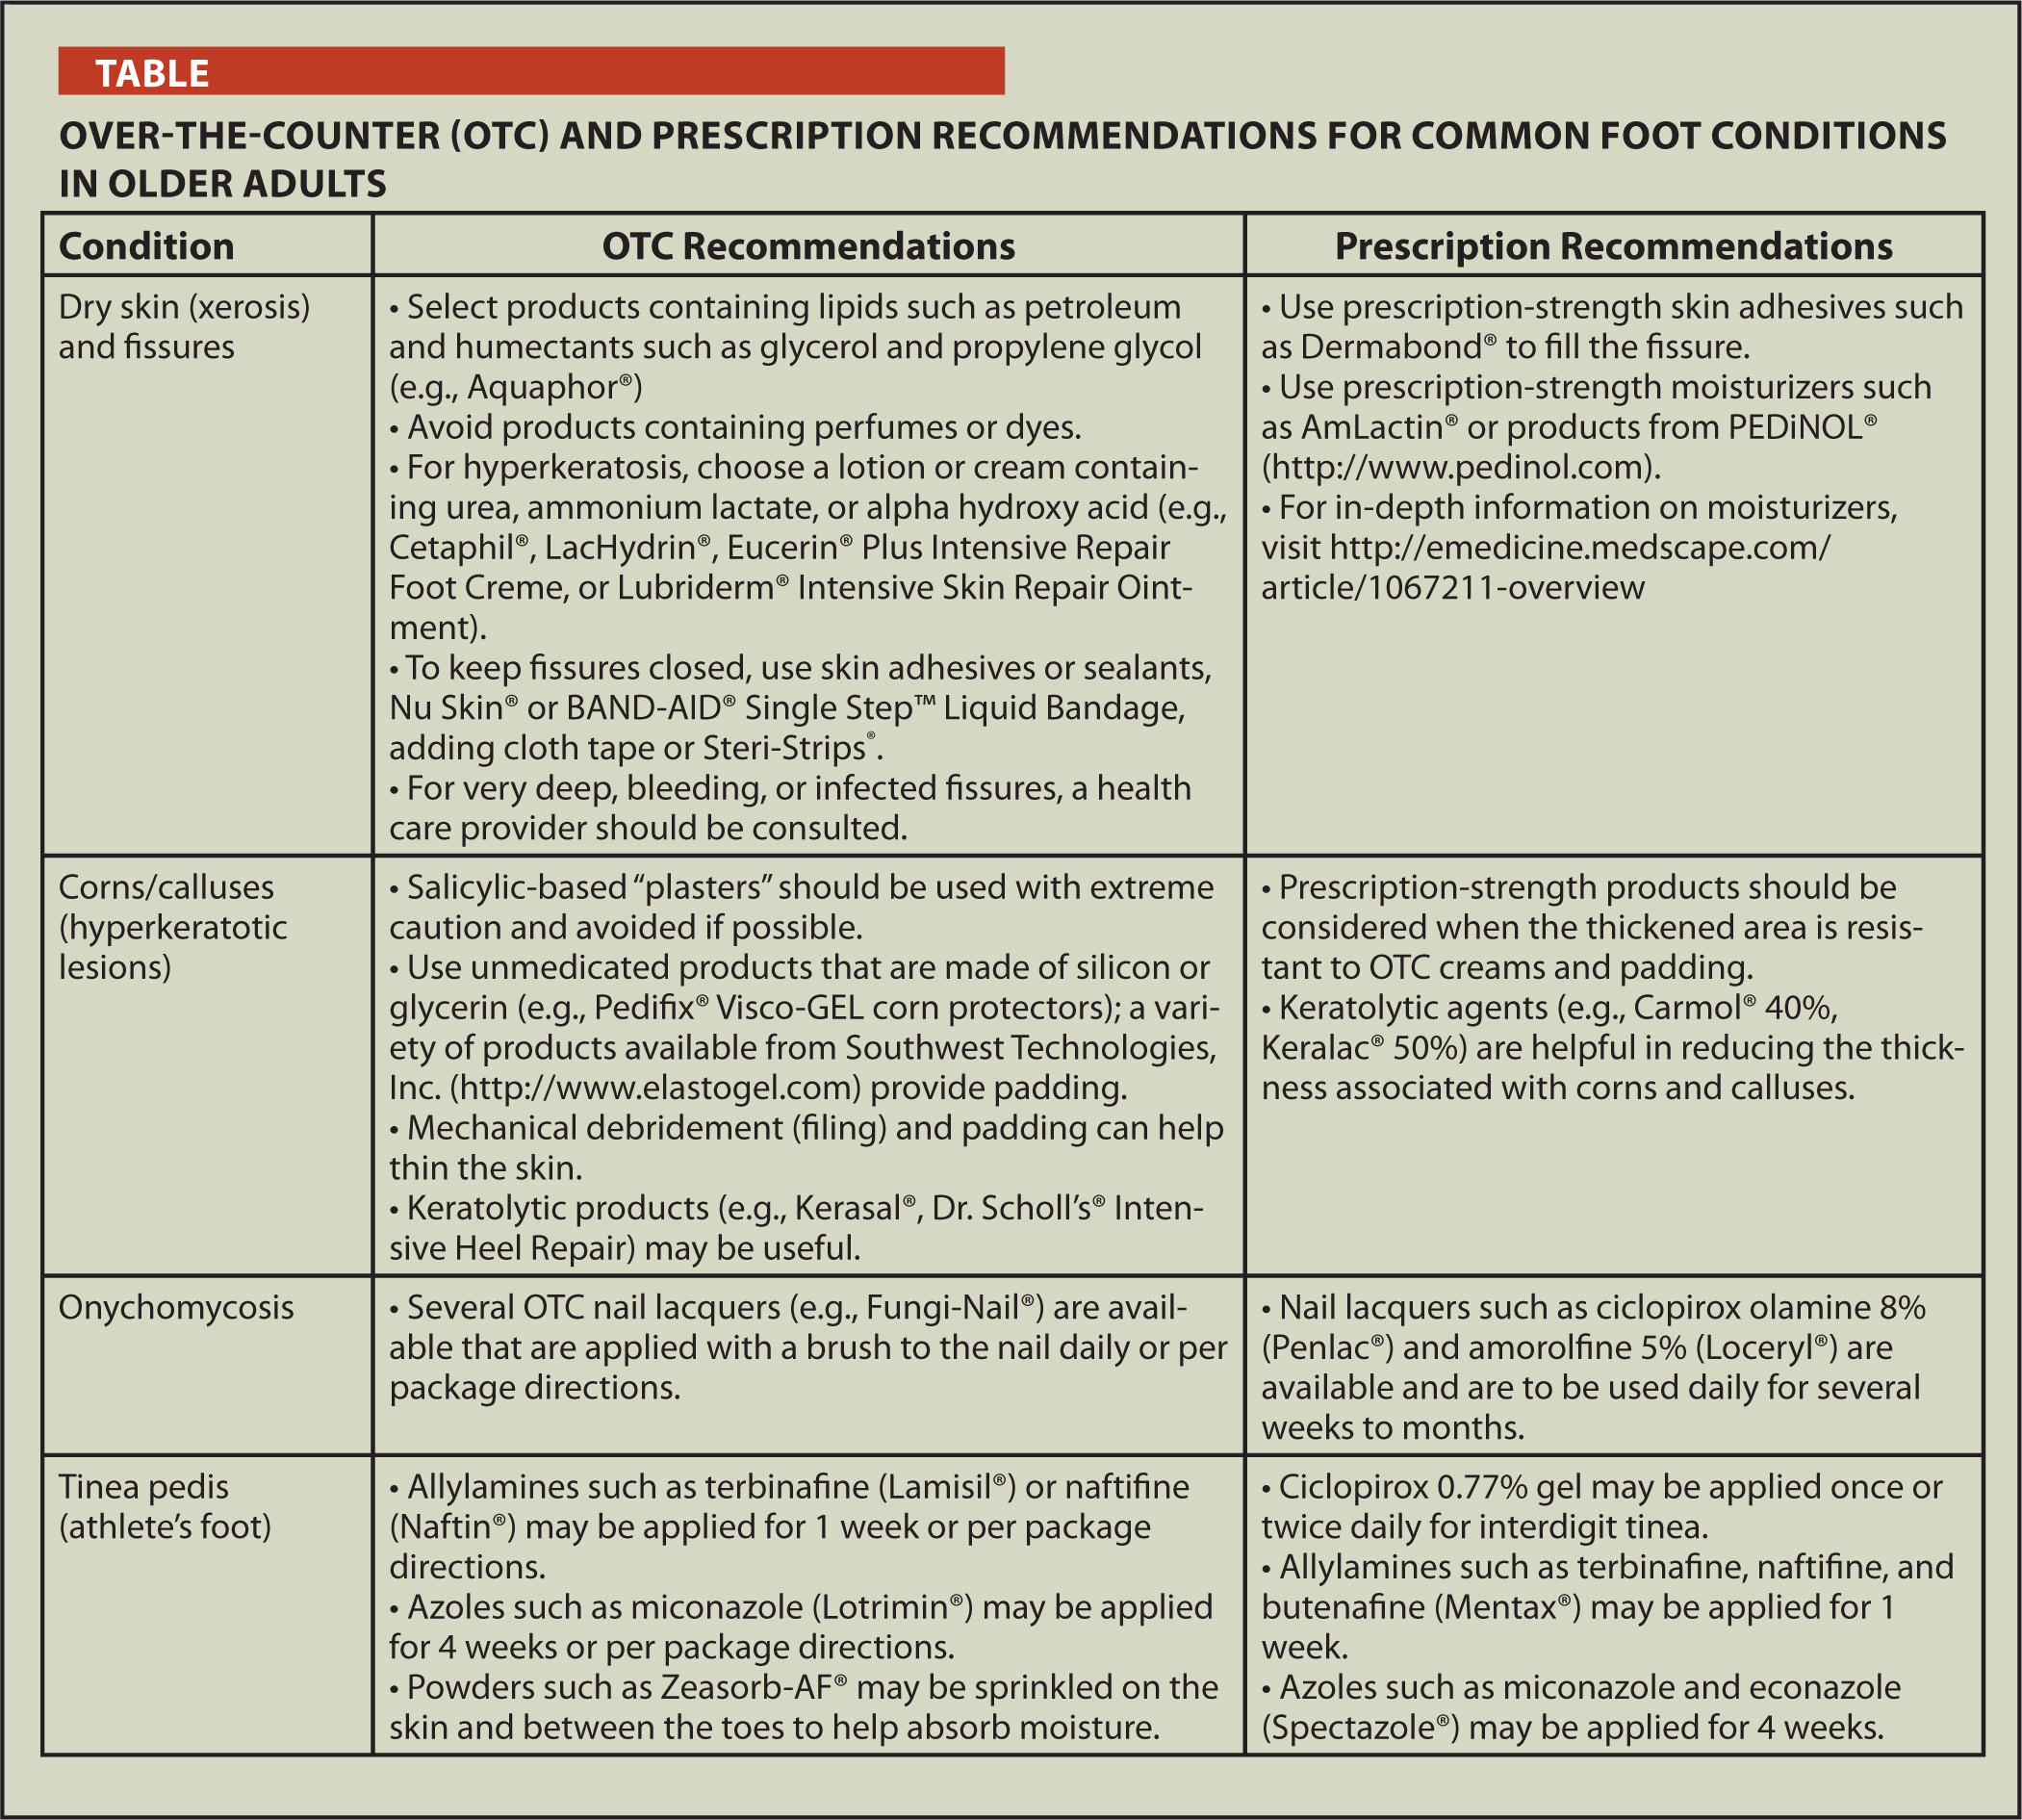 Over-The-Counter (OTC) and Prescription Recommendations for Common Foot Conditions in Older Adults